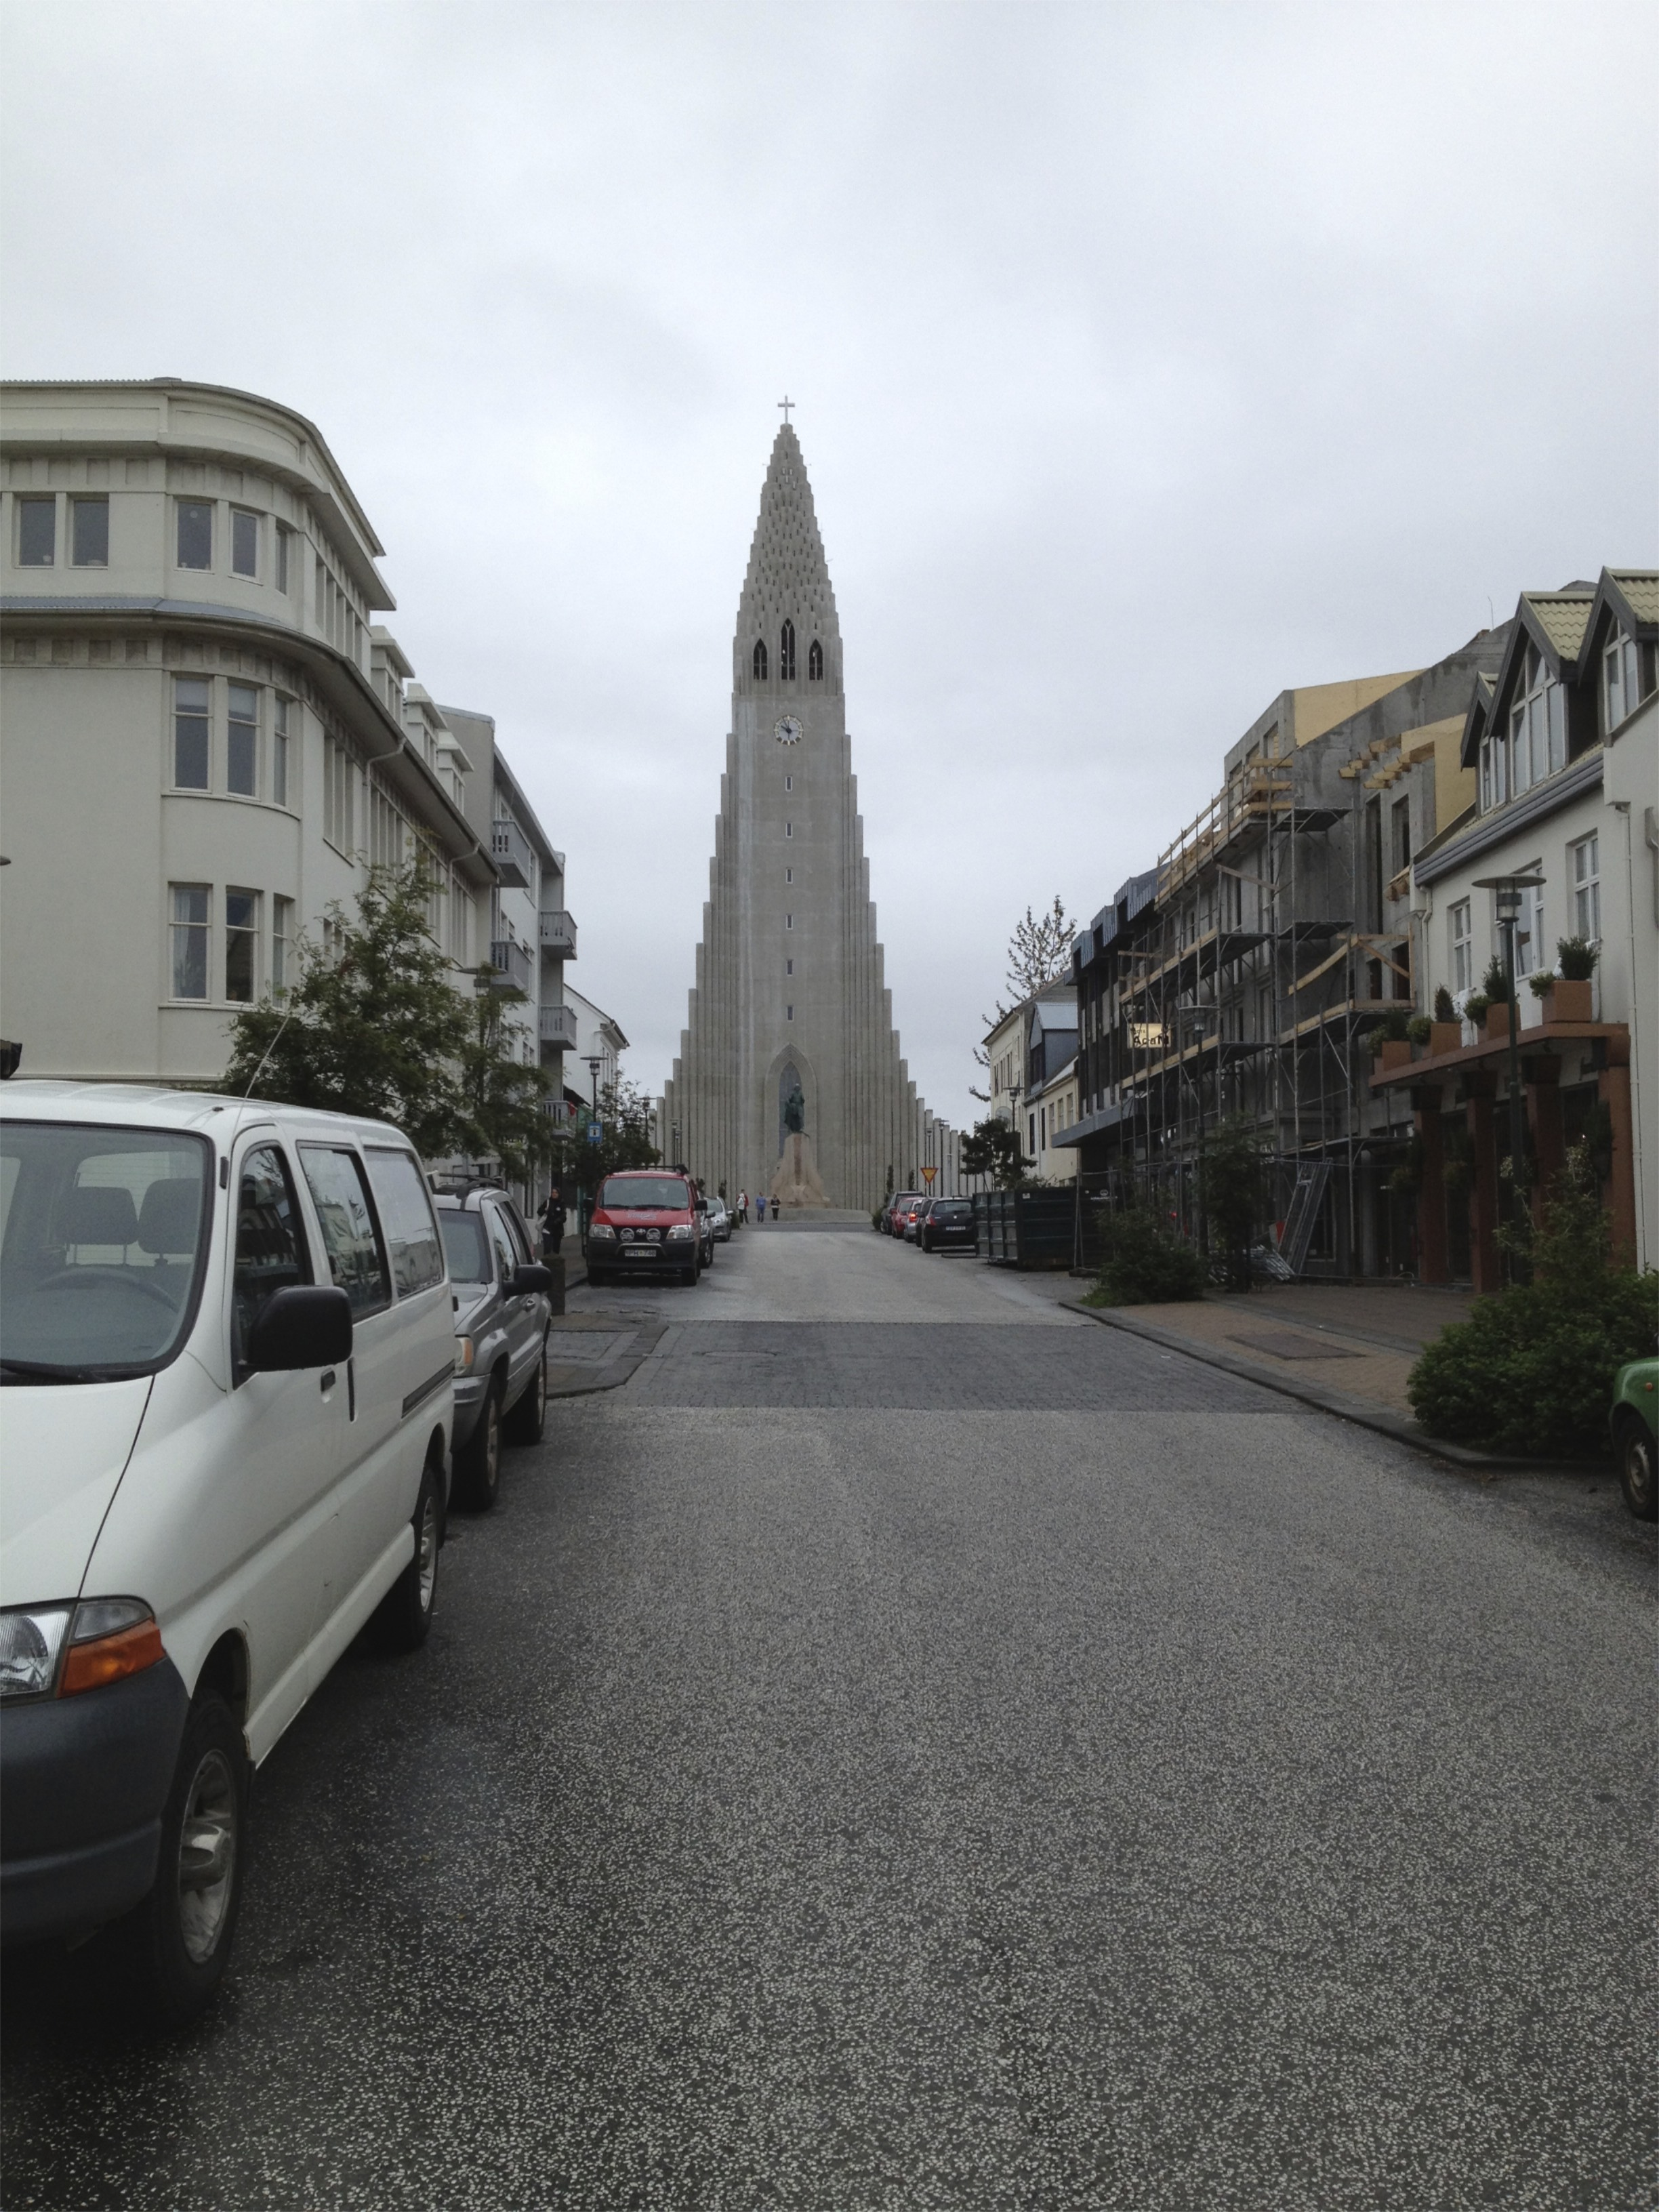 Hallgrímskirkja - the National Lutheran church.